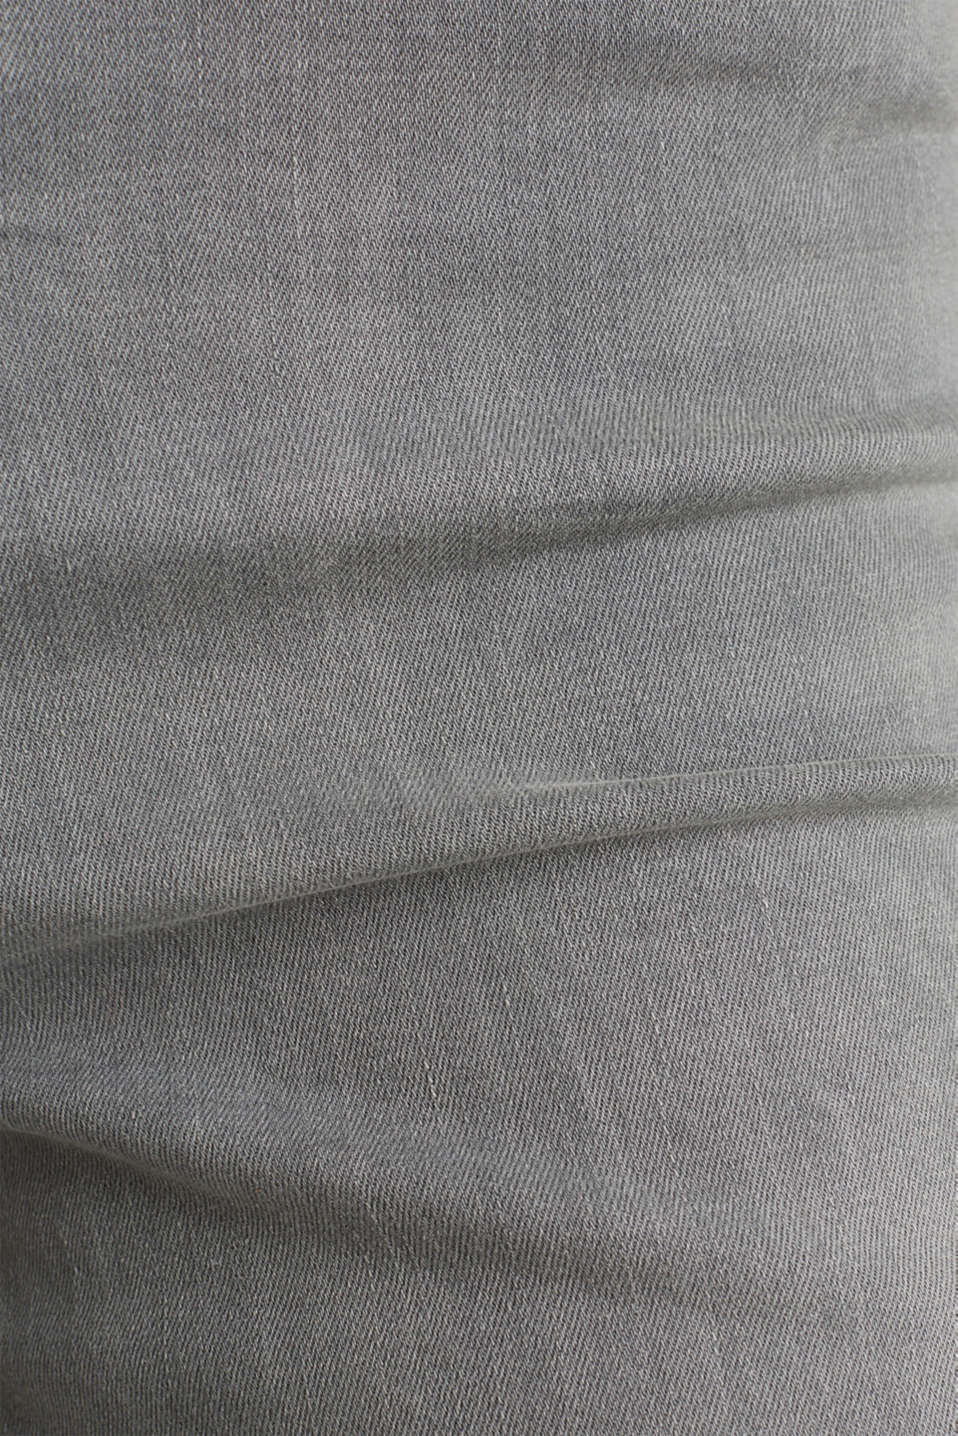 Bootcut jeans with a high waistband, GREY MEDIUM WASH, detail image number 4